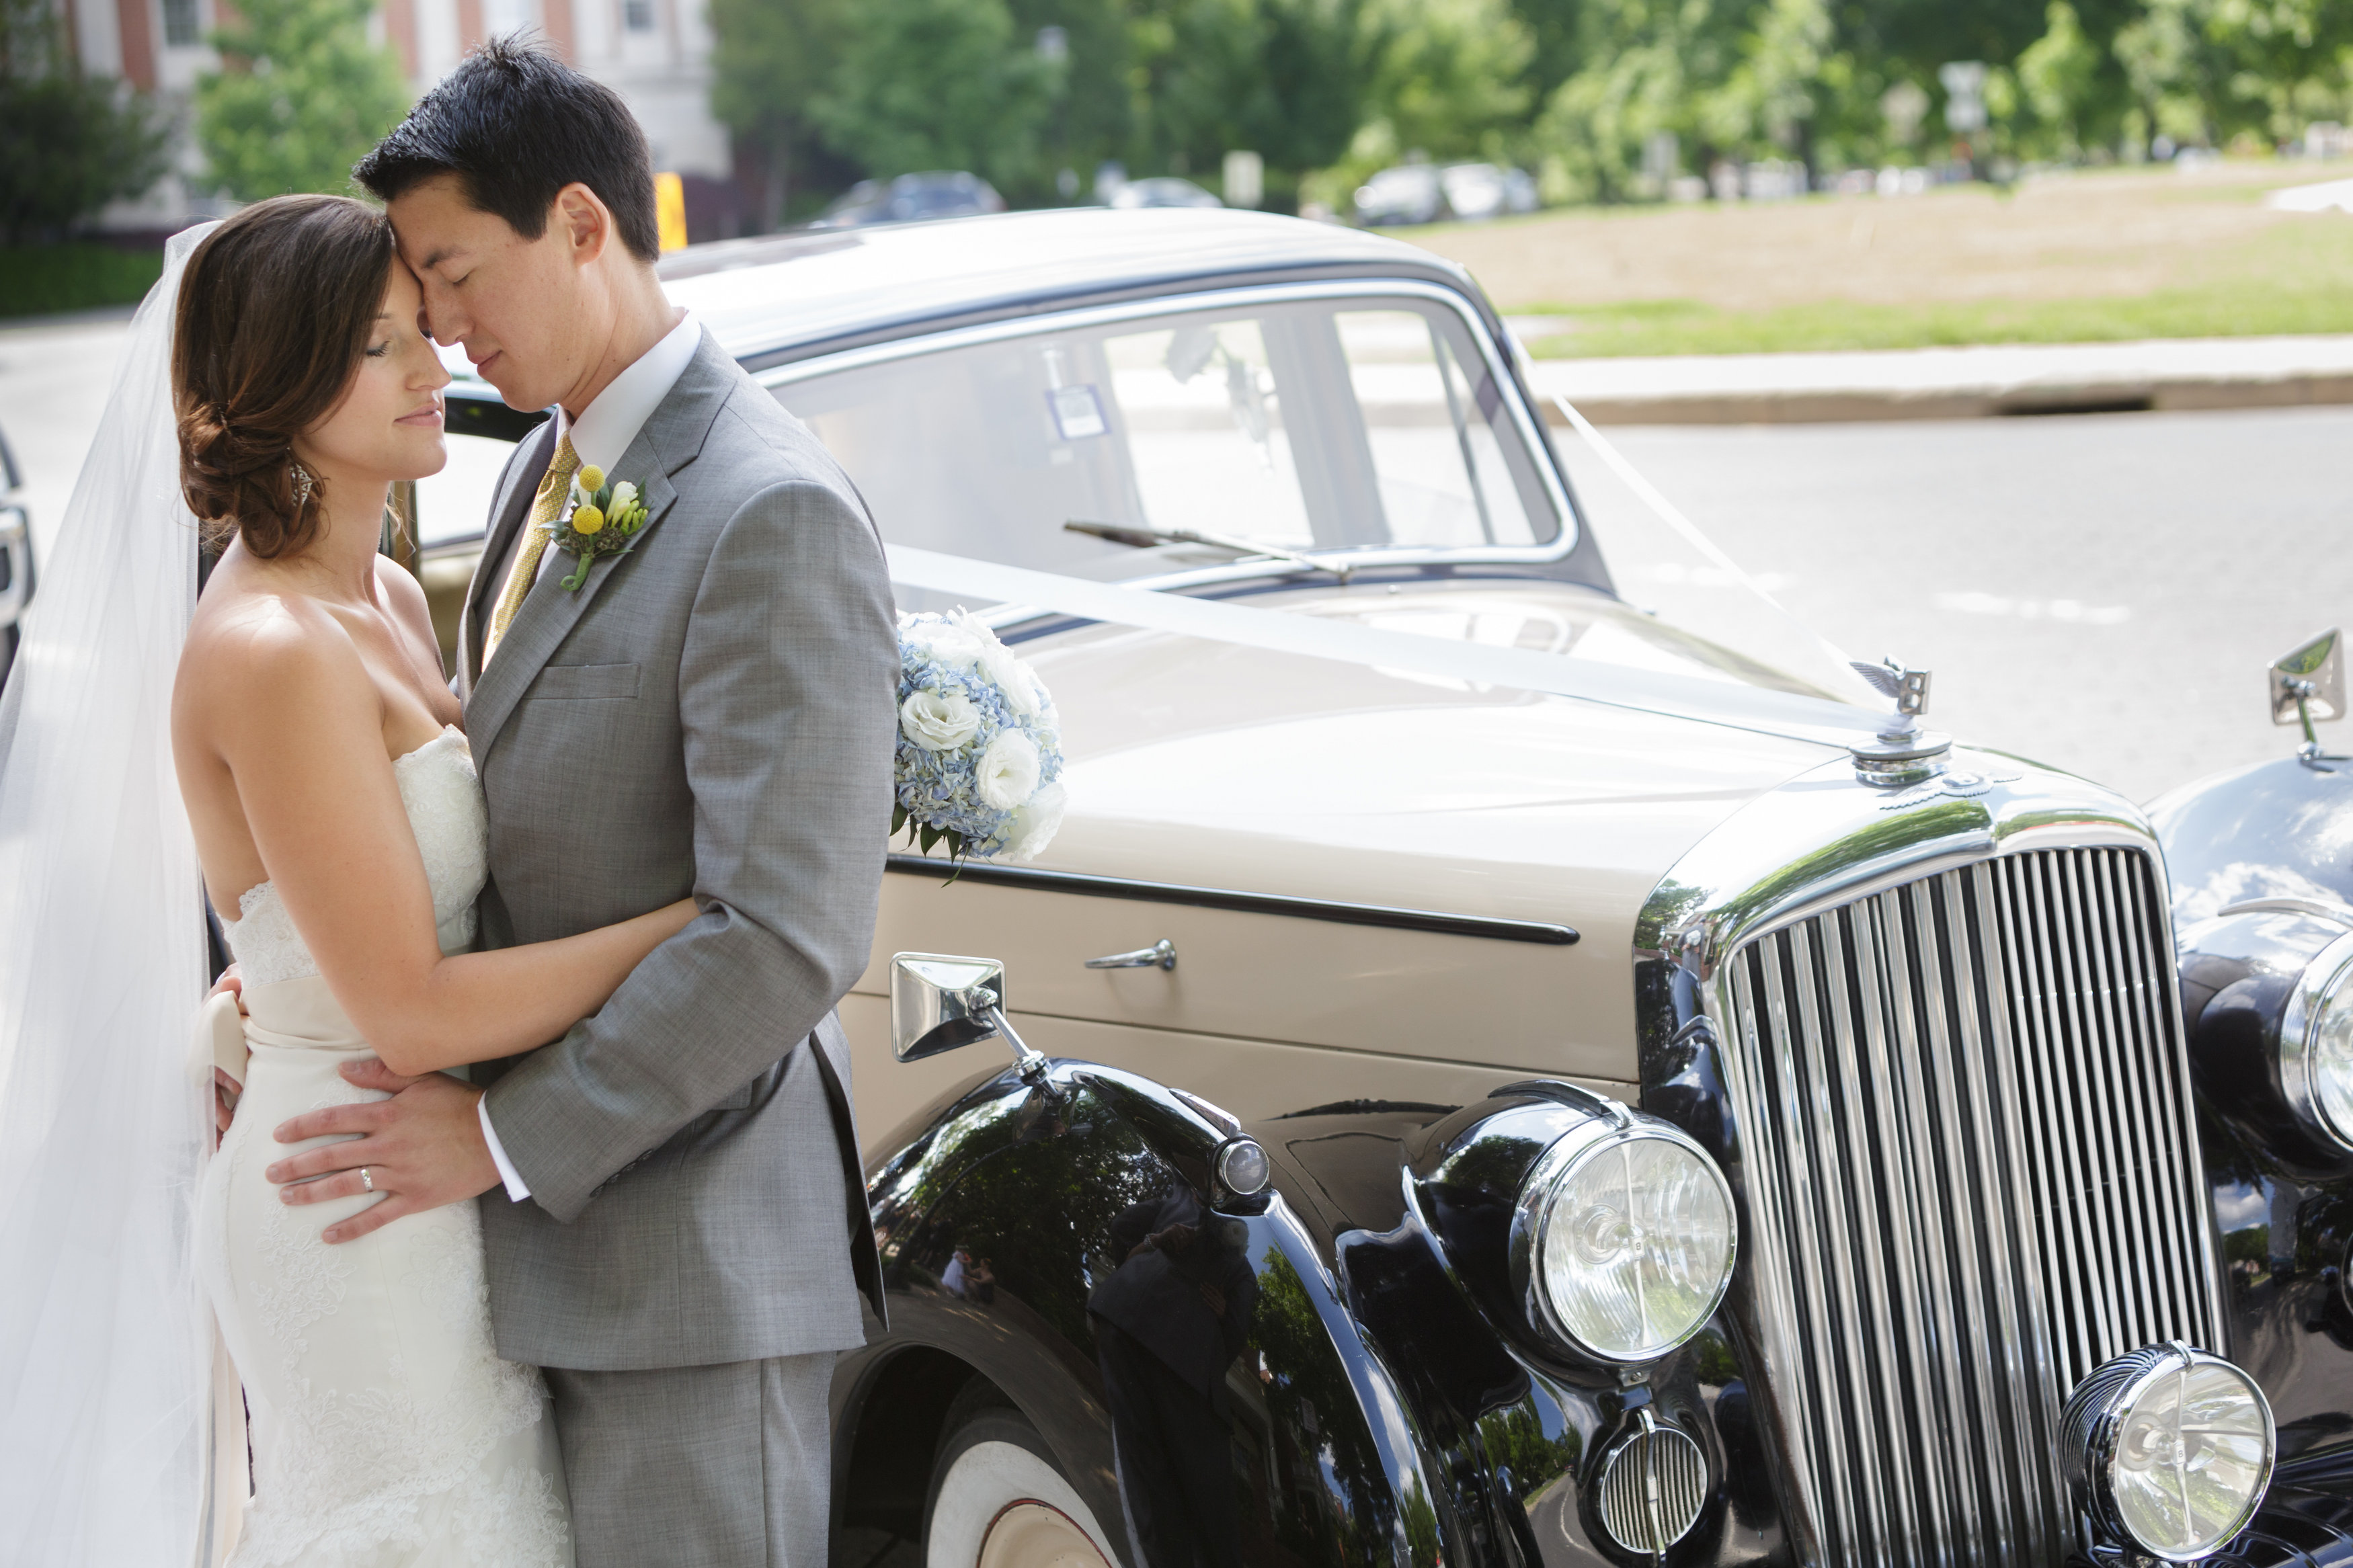 Congratulations to Ryan & Jessica! Loving the vintage Bentley!